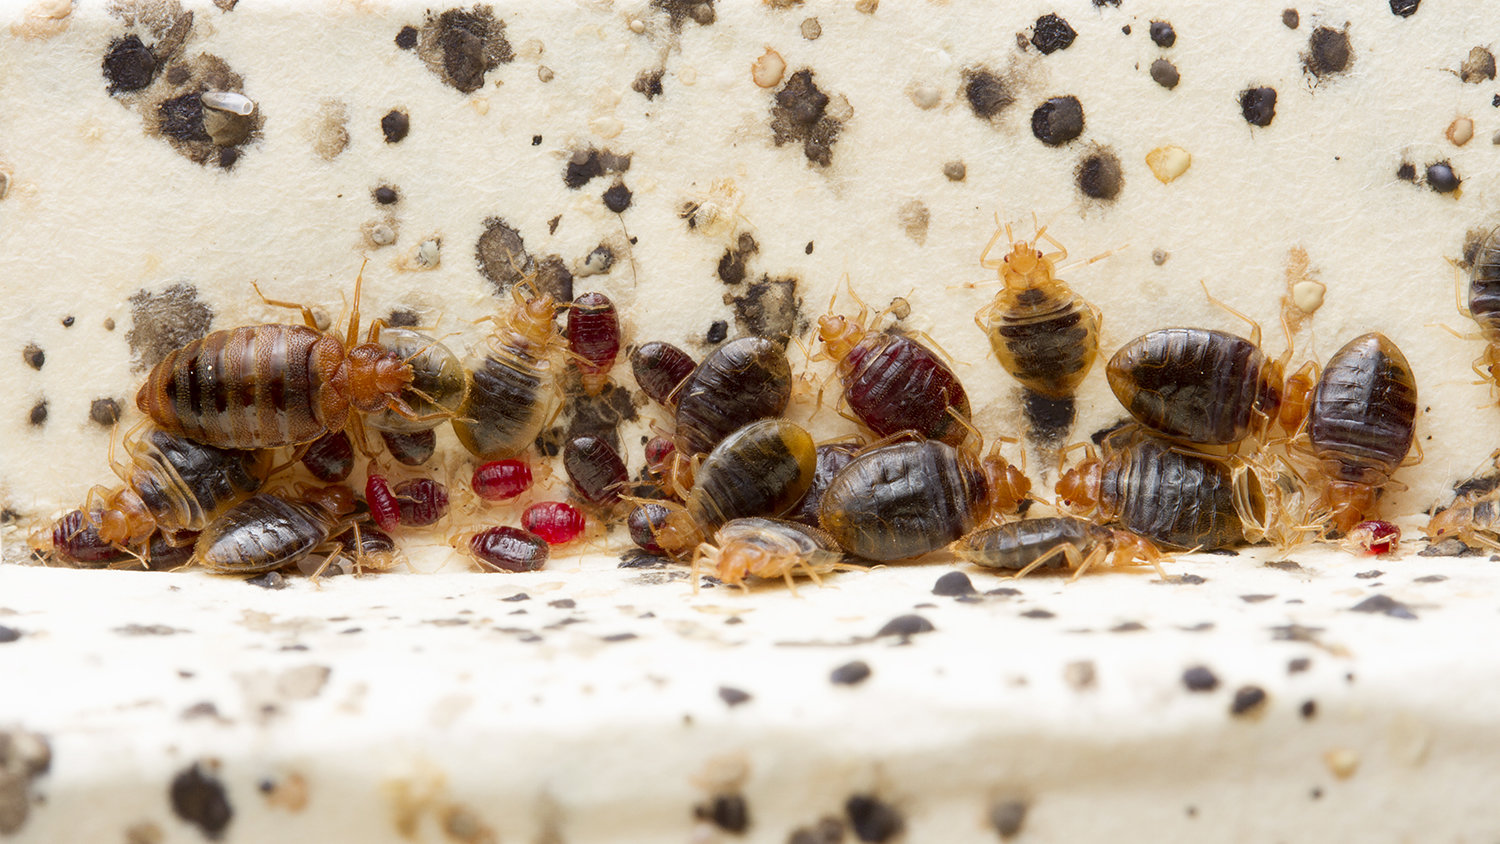 Bed Bug Control Durban experts dont use aerosols like doom. They are generally ineffective and potentially dangerouse